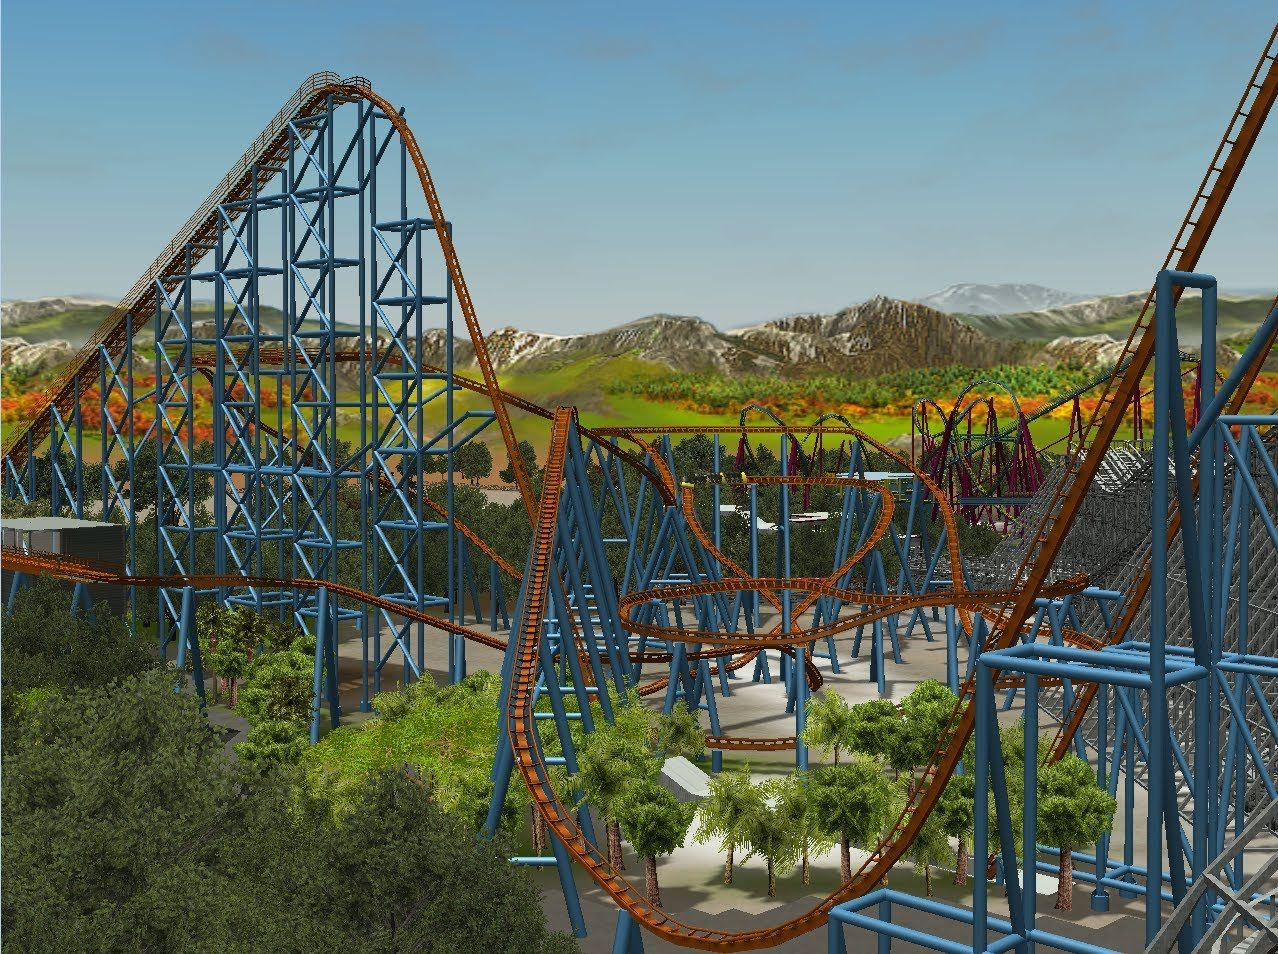 Coaster Park Tycoon is coming in 2016  It's a new PC game by